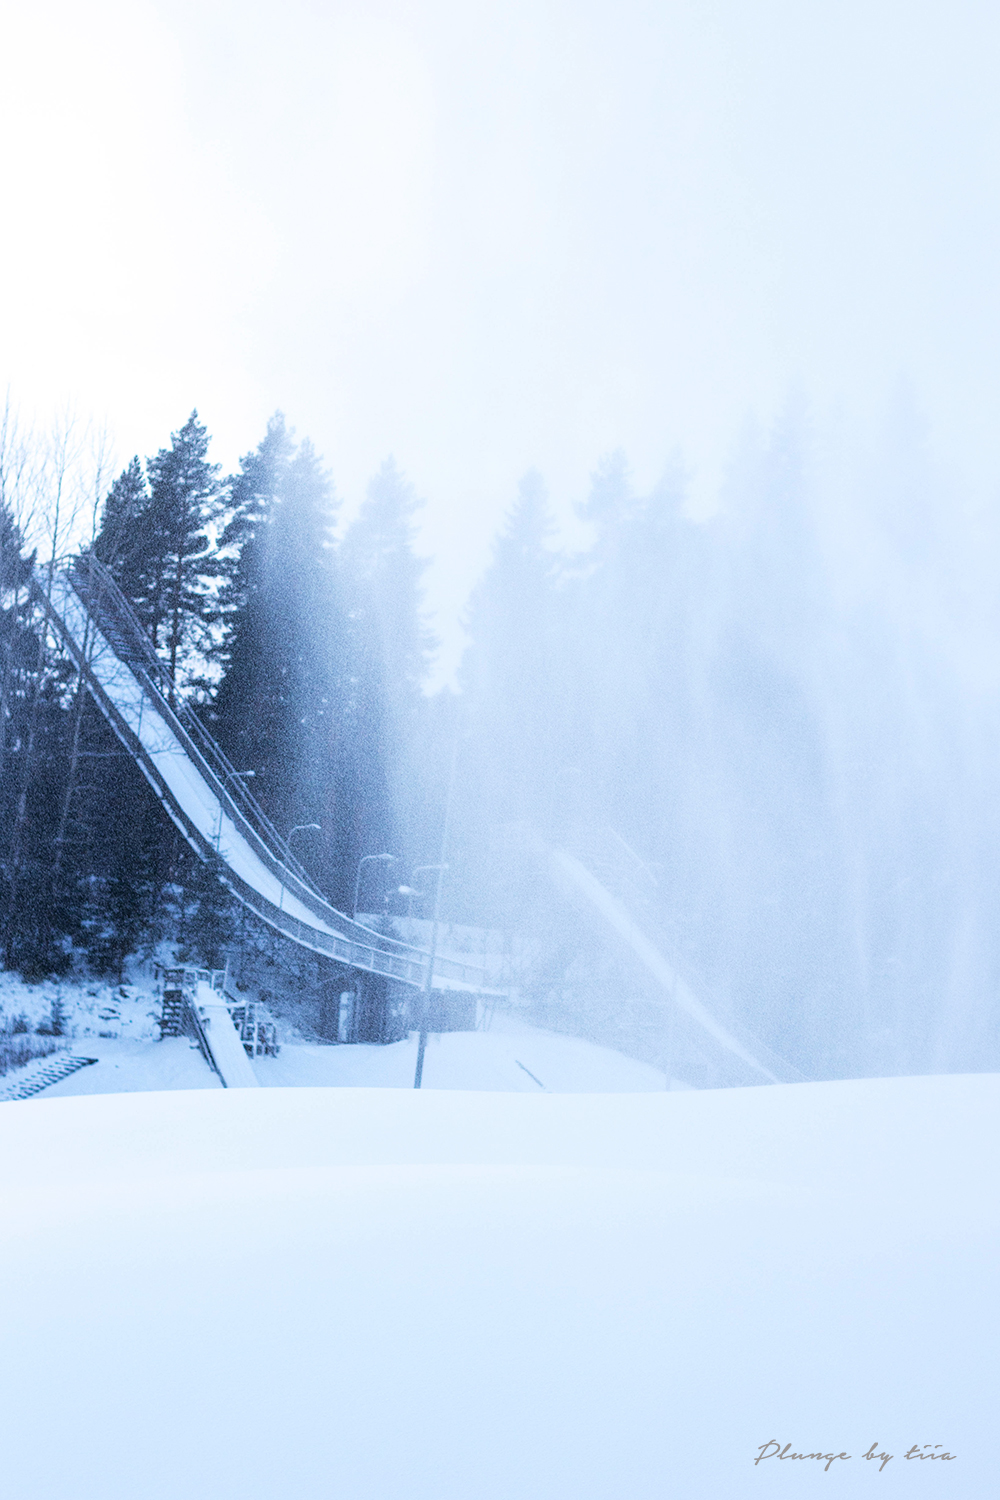 Small ski jump in Lahti, Finland